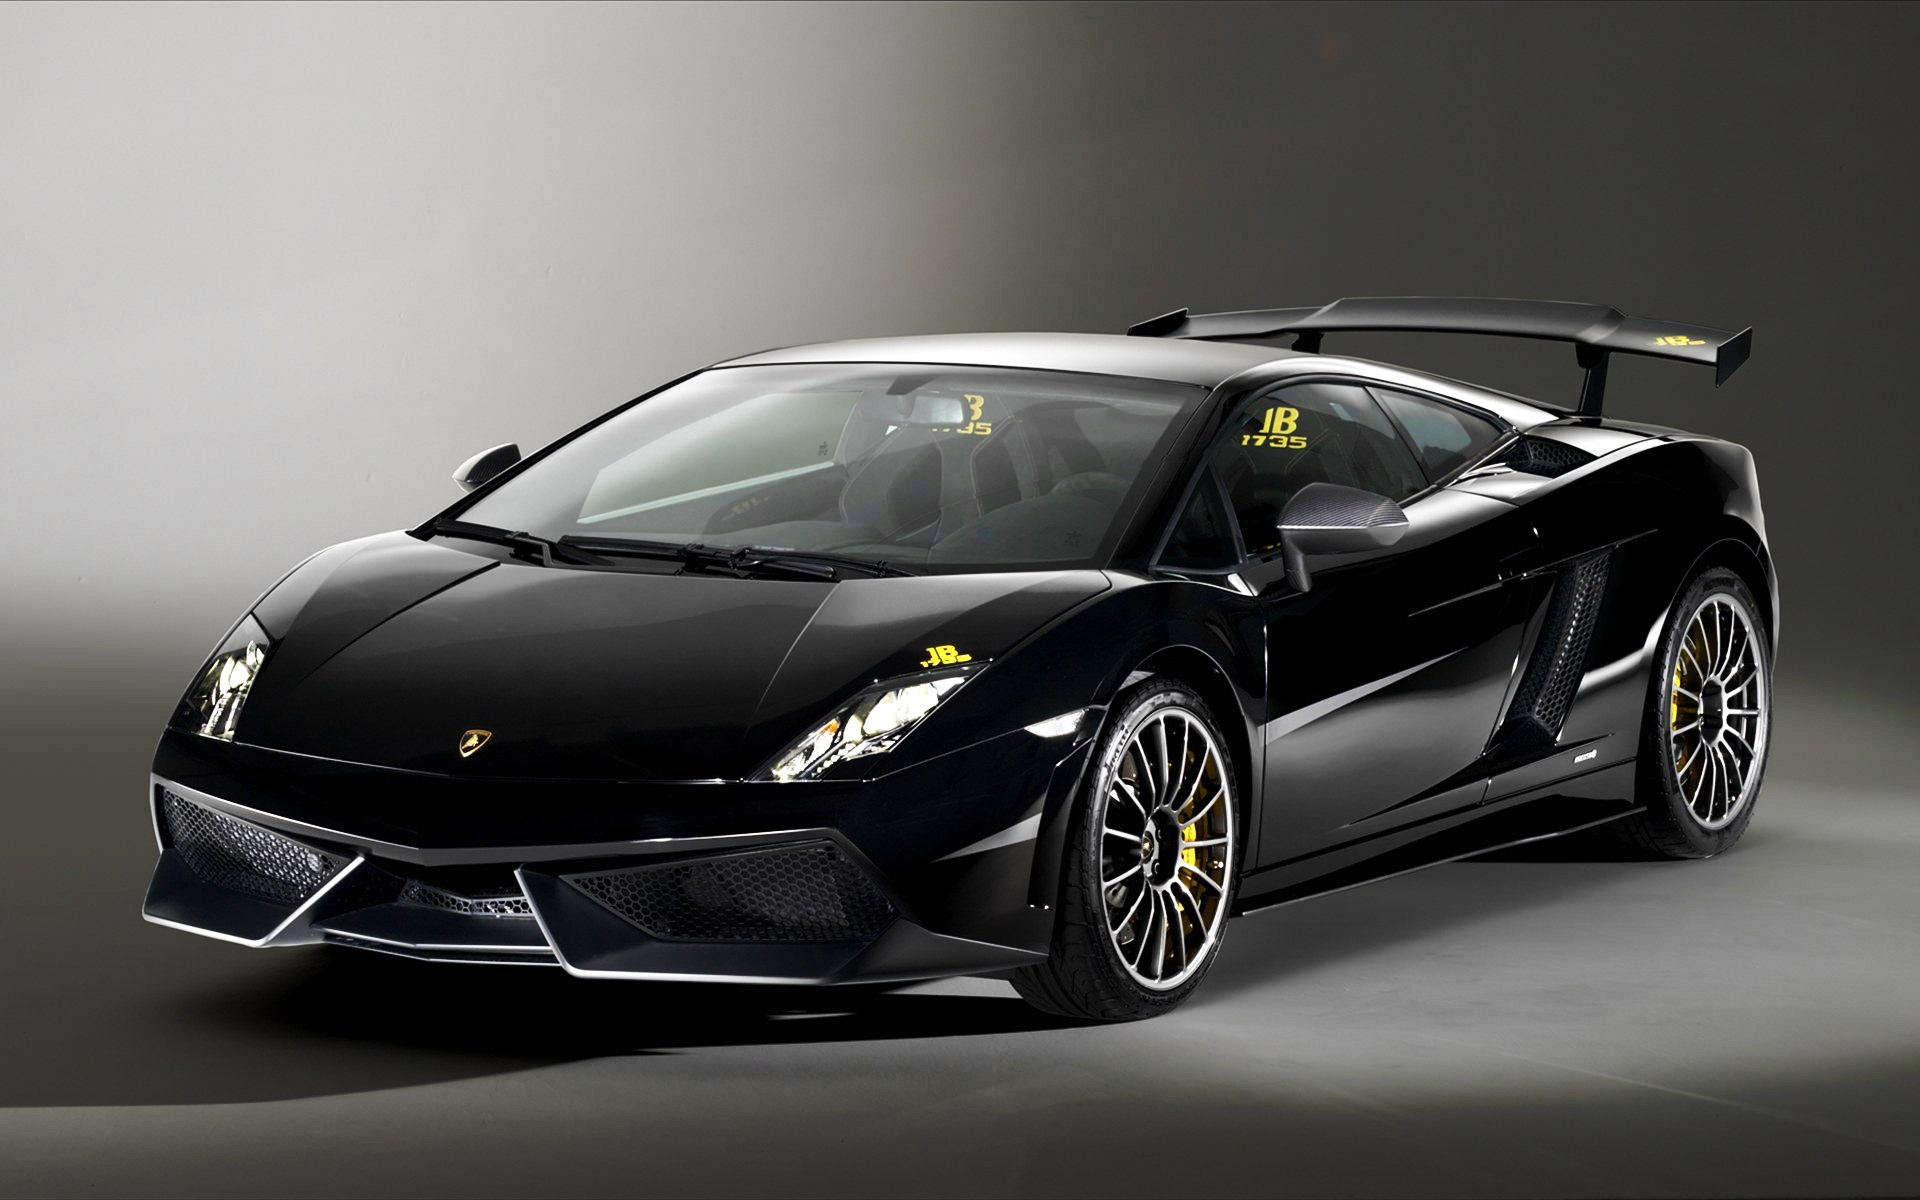 lamborghini gallardo wallpapers - Lamborghini Gallardo Wallpaper Blue